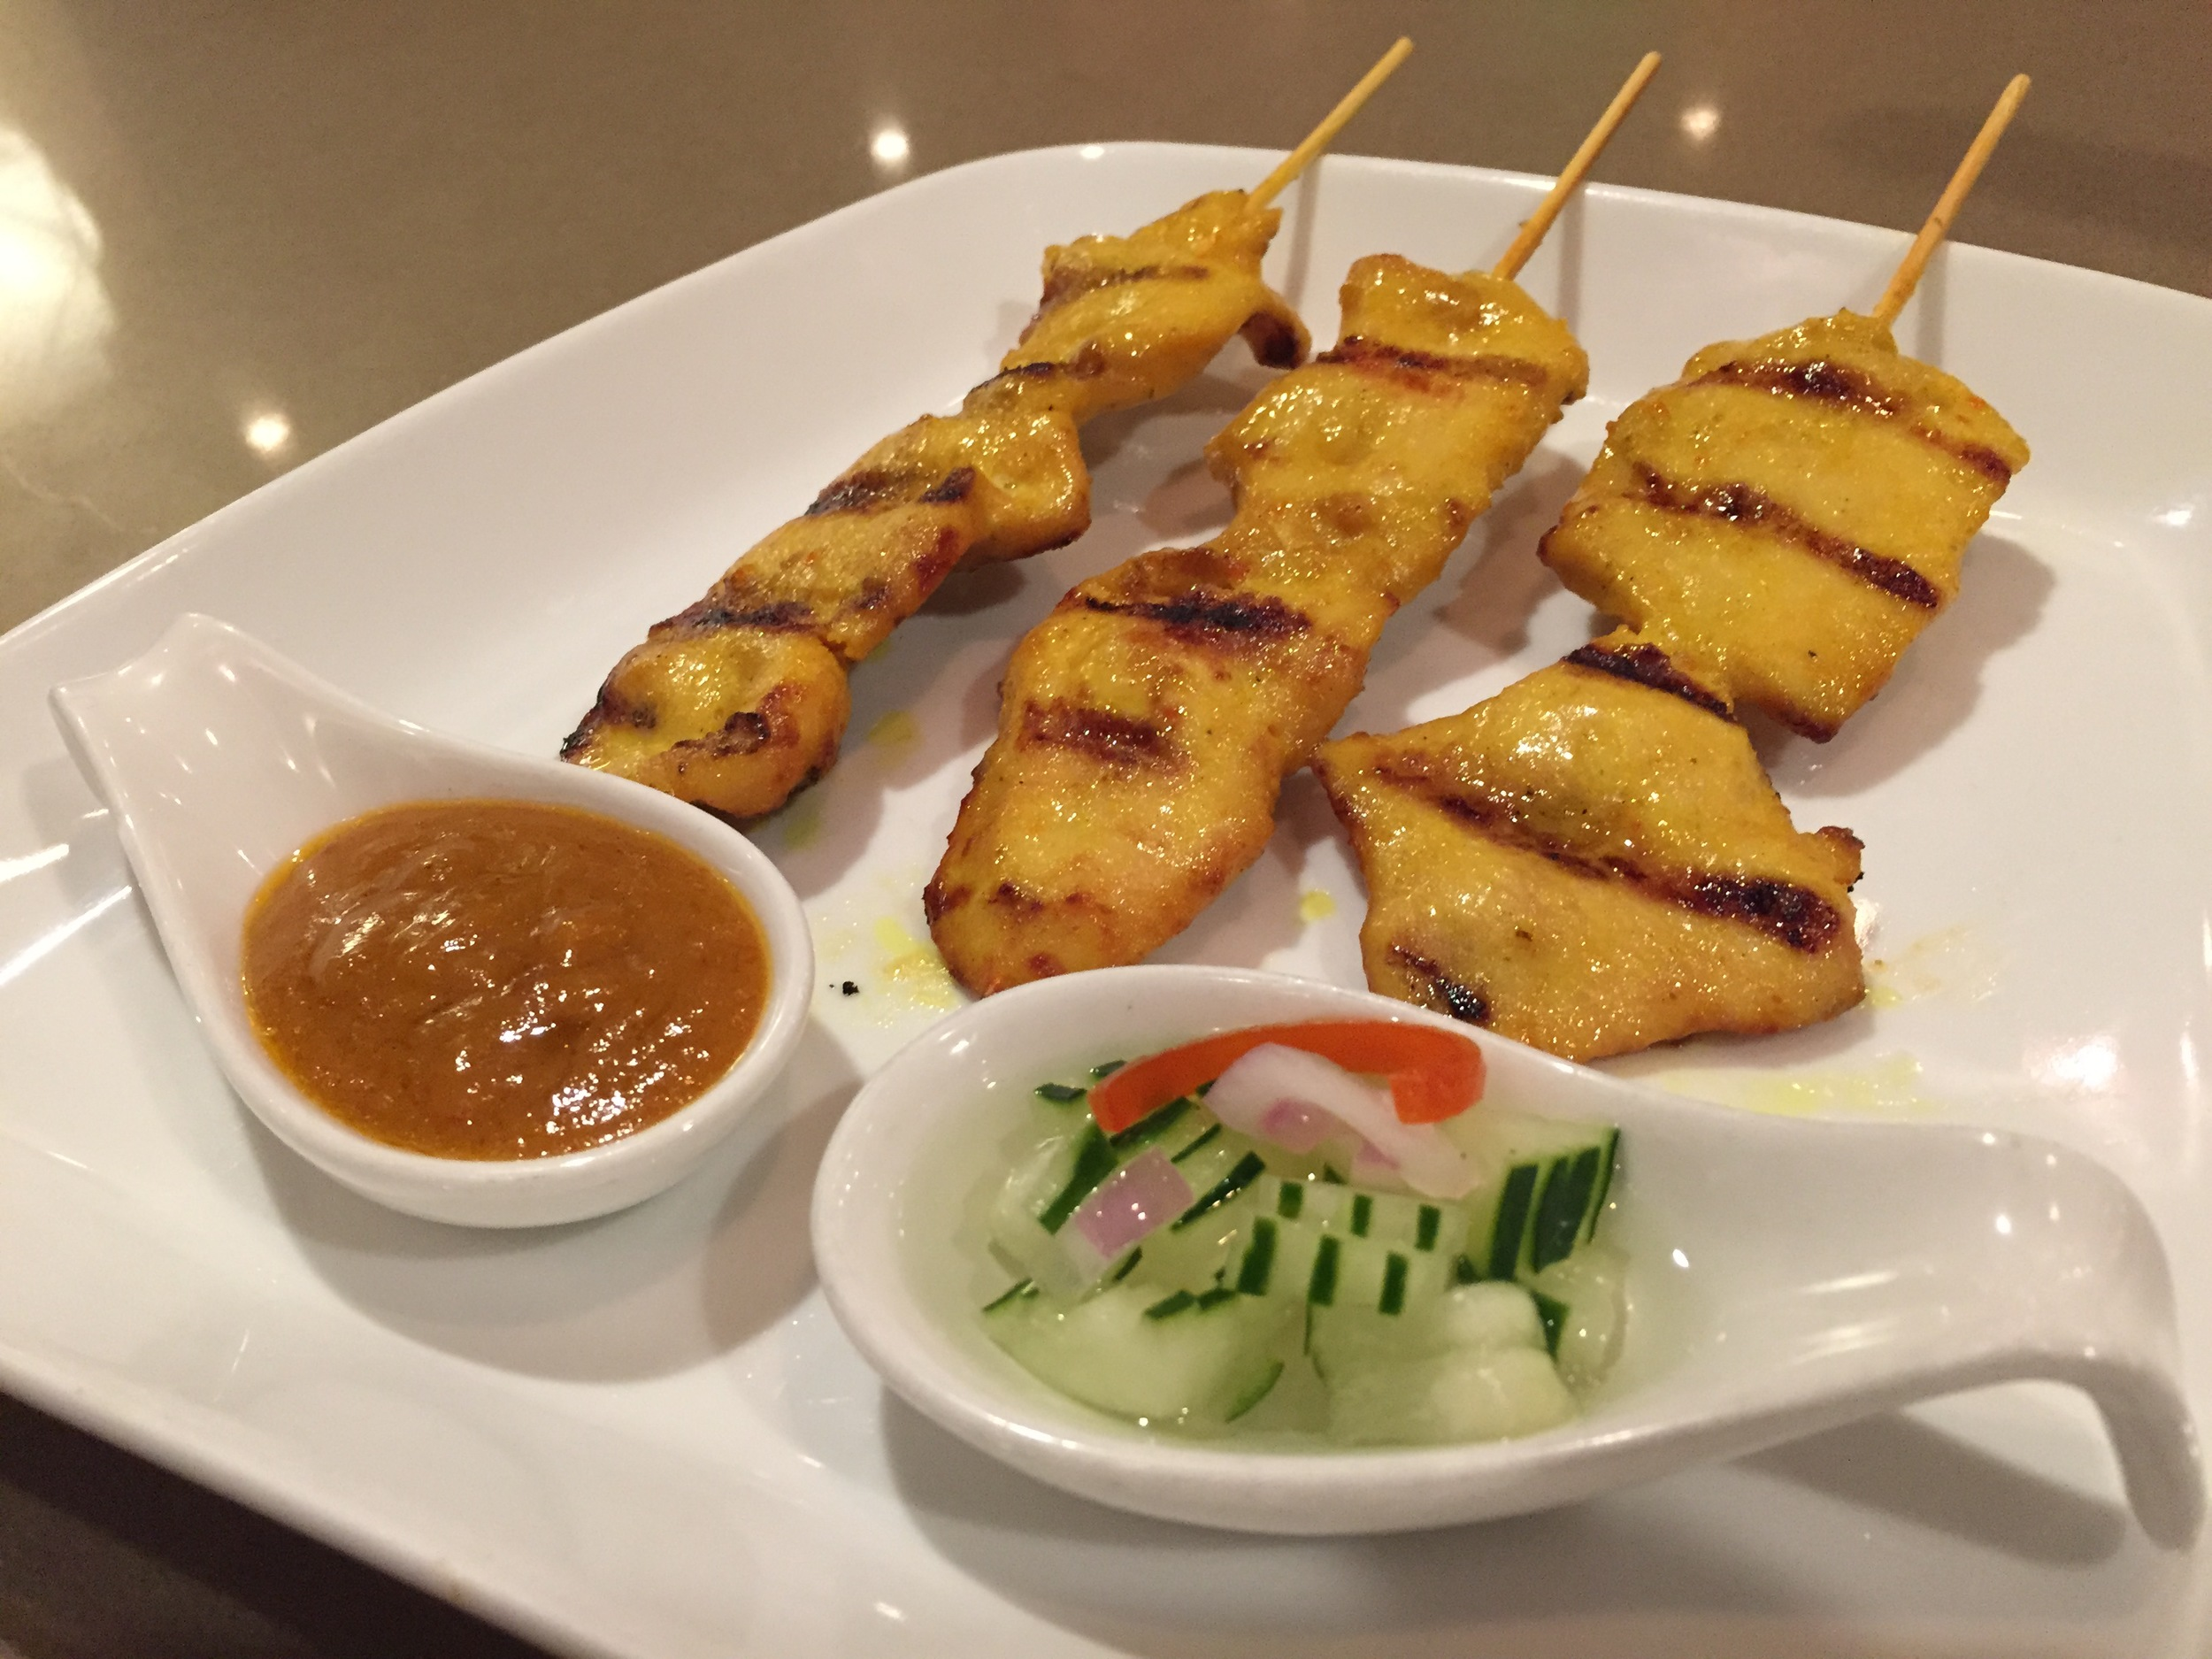 Chicken Satay is also on our Happy Hour menu at only $4